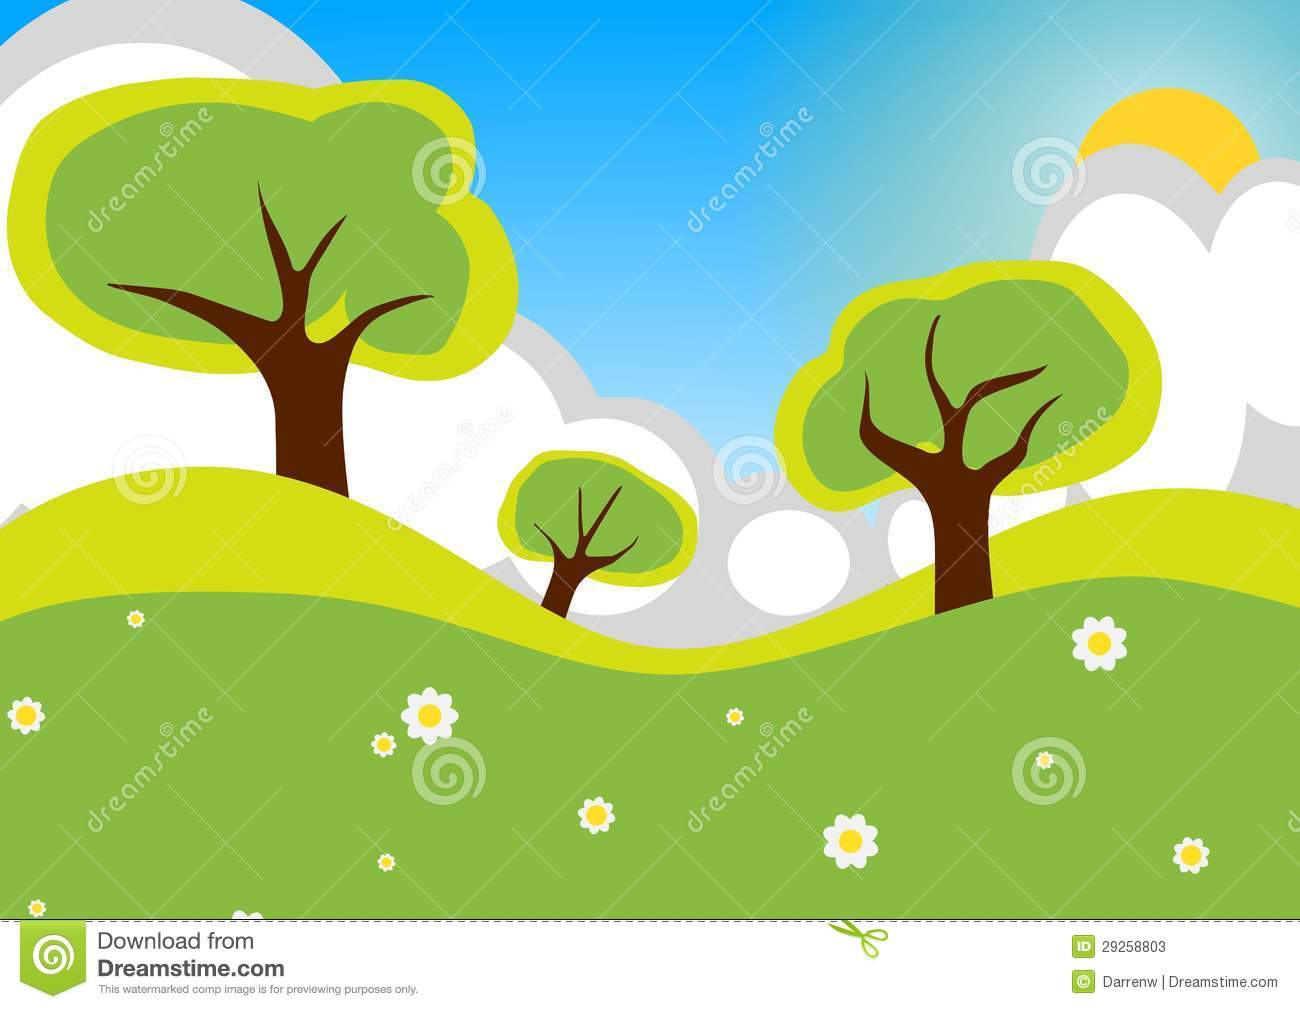 Countryside Cartoon Stock Illustration Illustration Of Cloudy 29258803 Popular cartoon tree of good quality and at affordable prices you can buy on aliexpress. dreamstime com